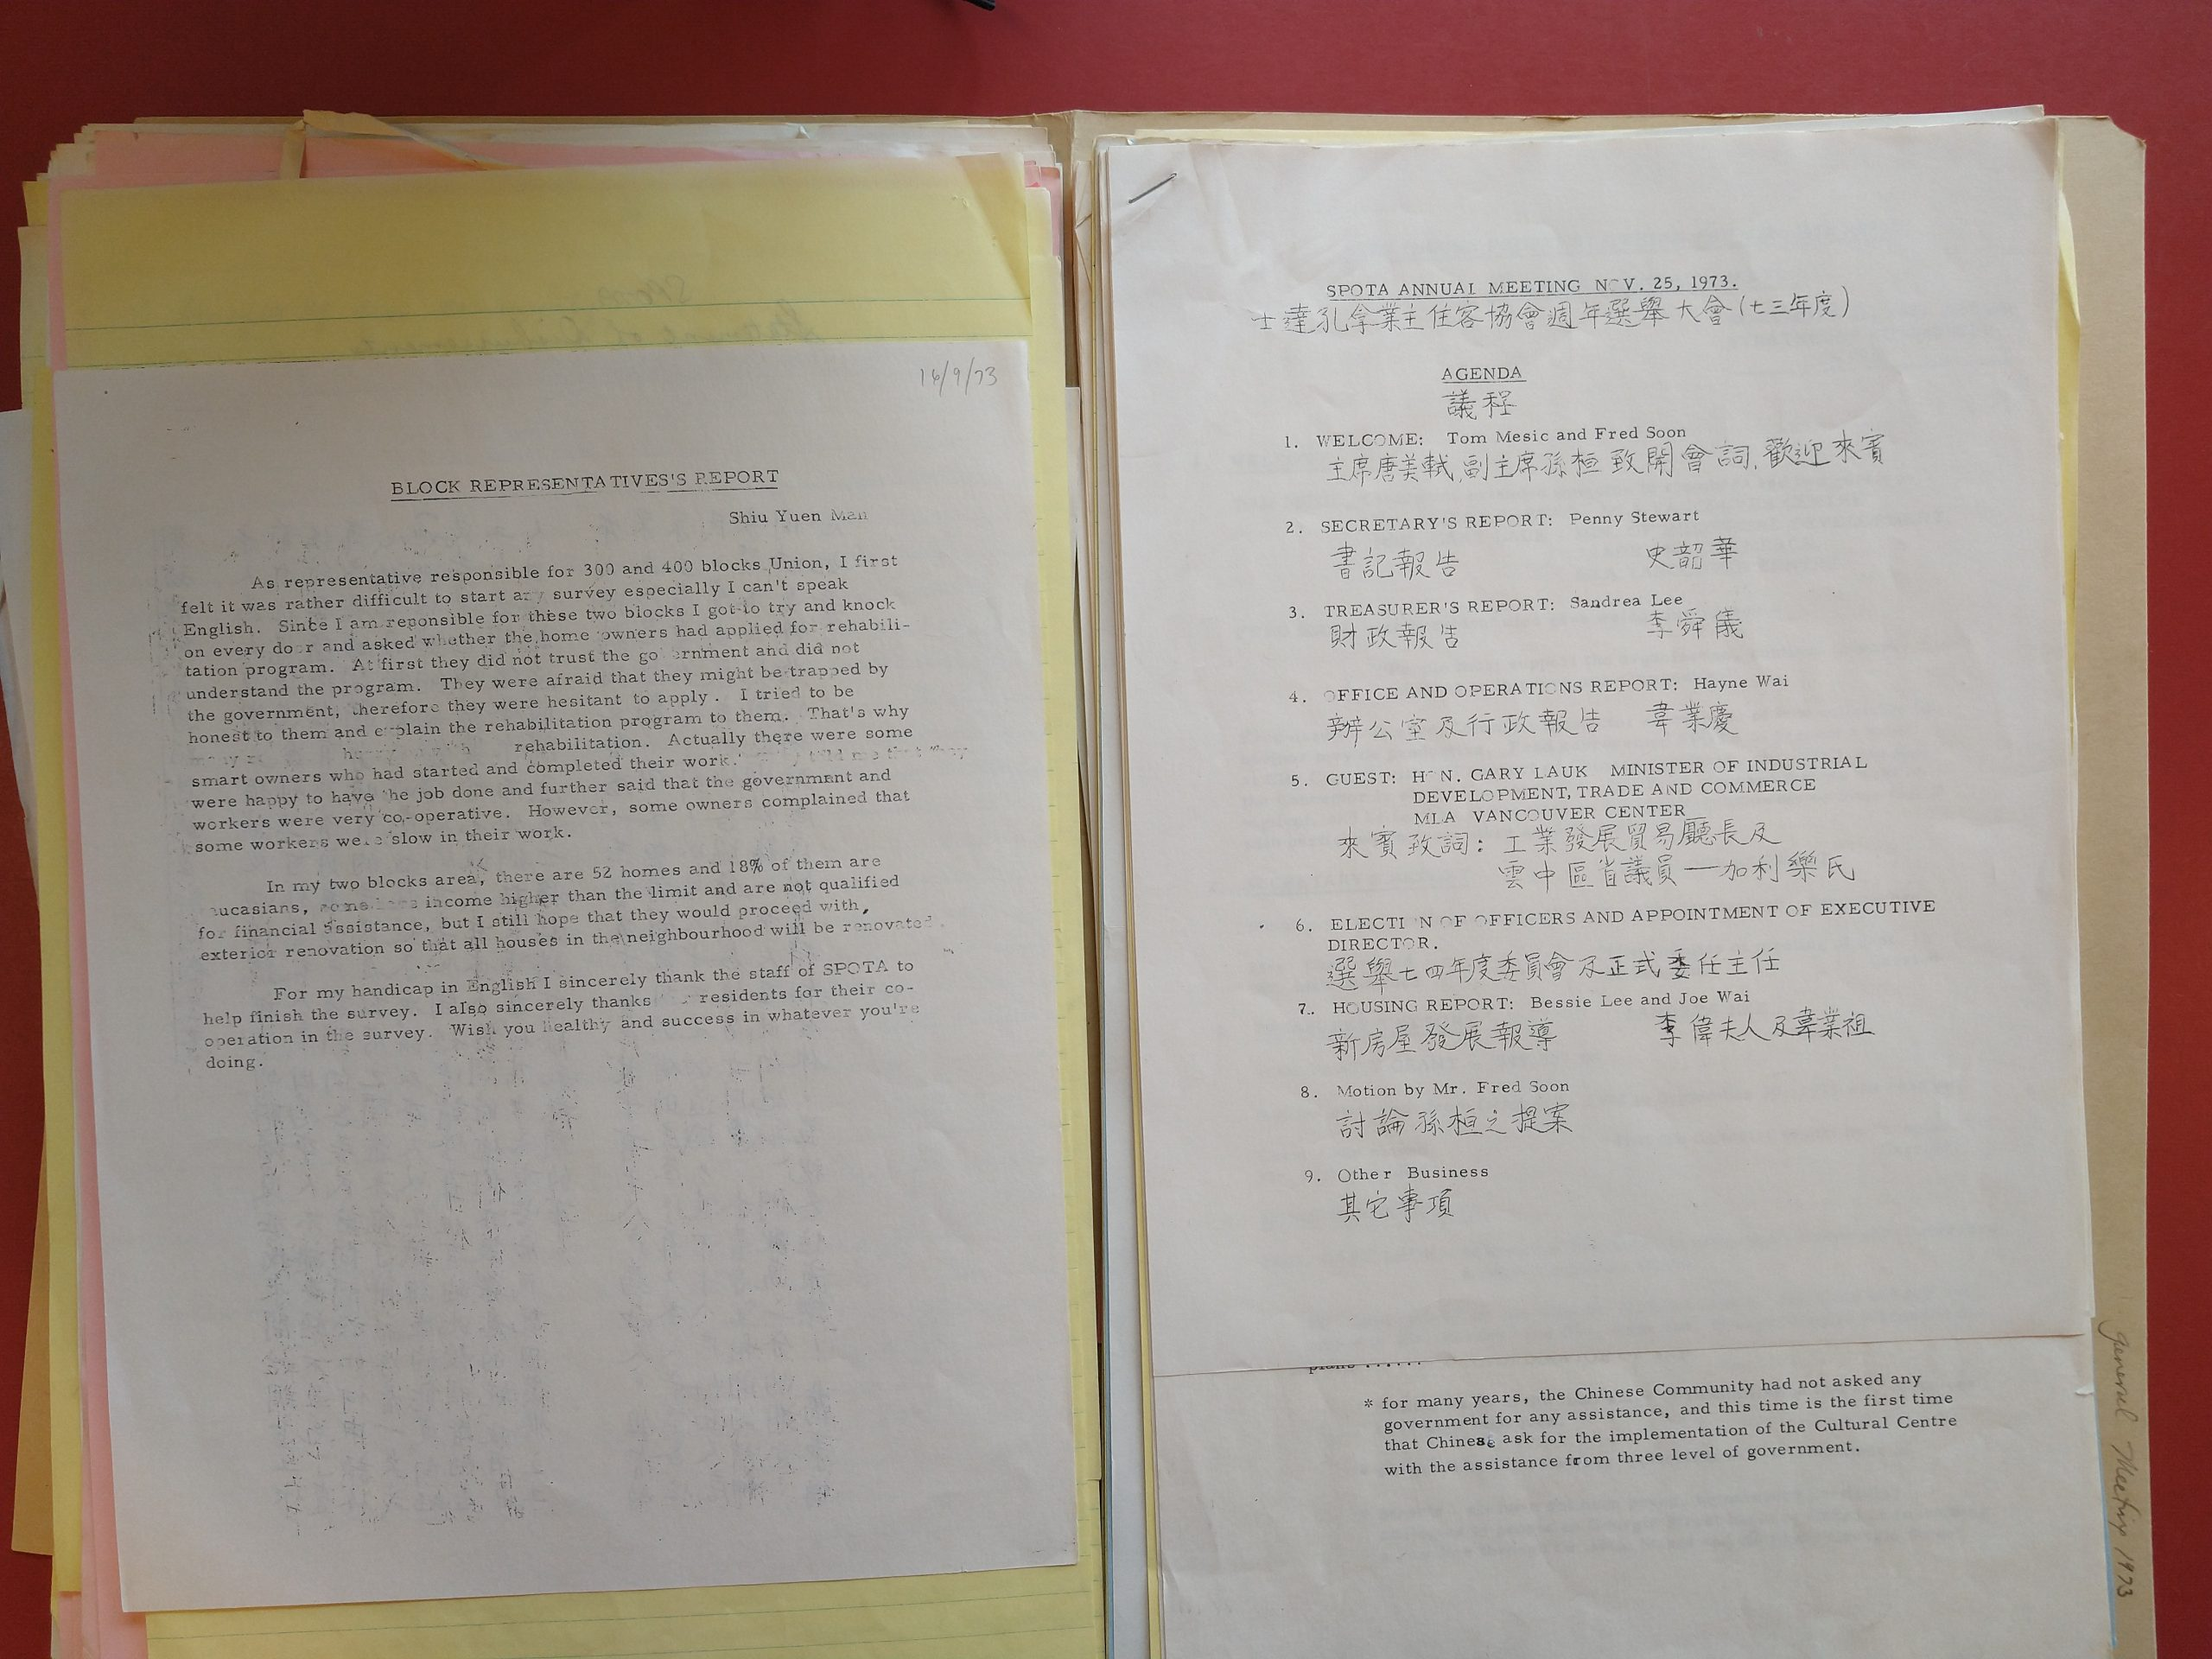 Meeting minutes from SPOTA fonds, which include both English and Chinese language script. Photo by Kira Baker.